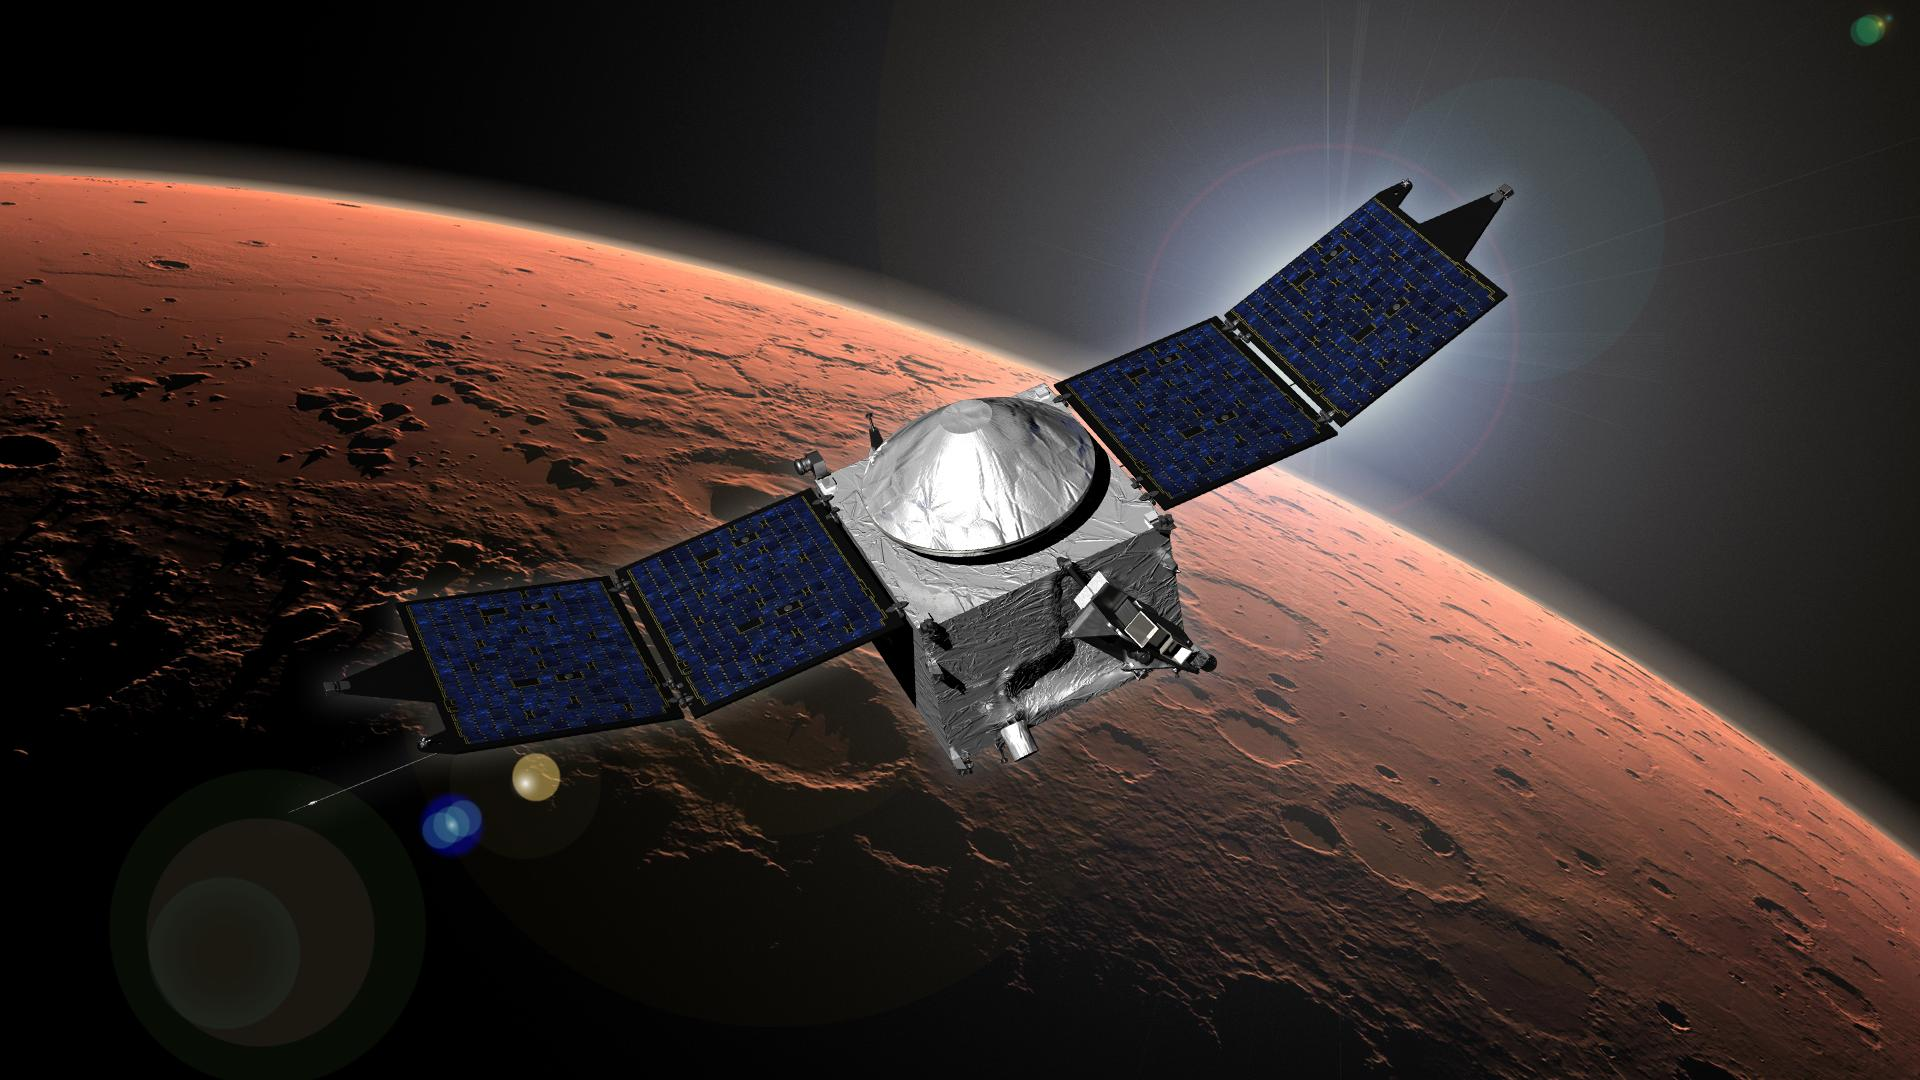 MAVEN Identifies Links in Chain Leading to Atmospheric Loss | NASA